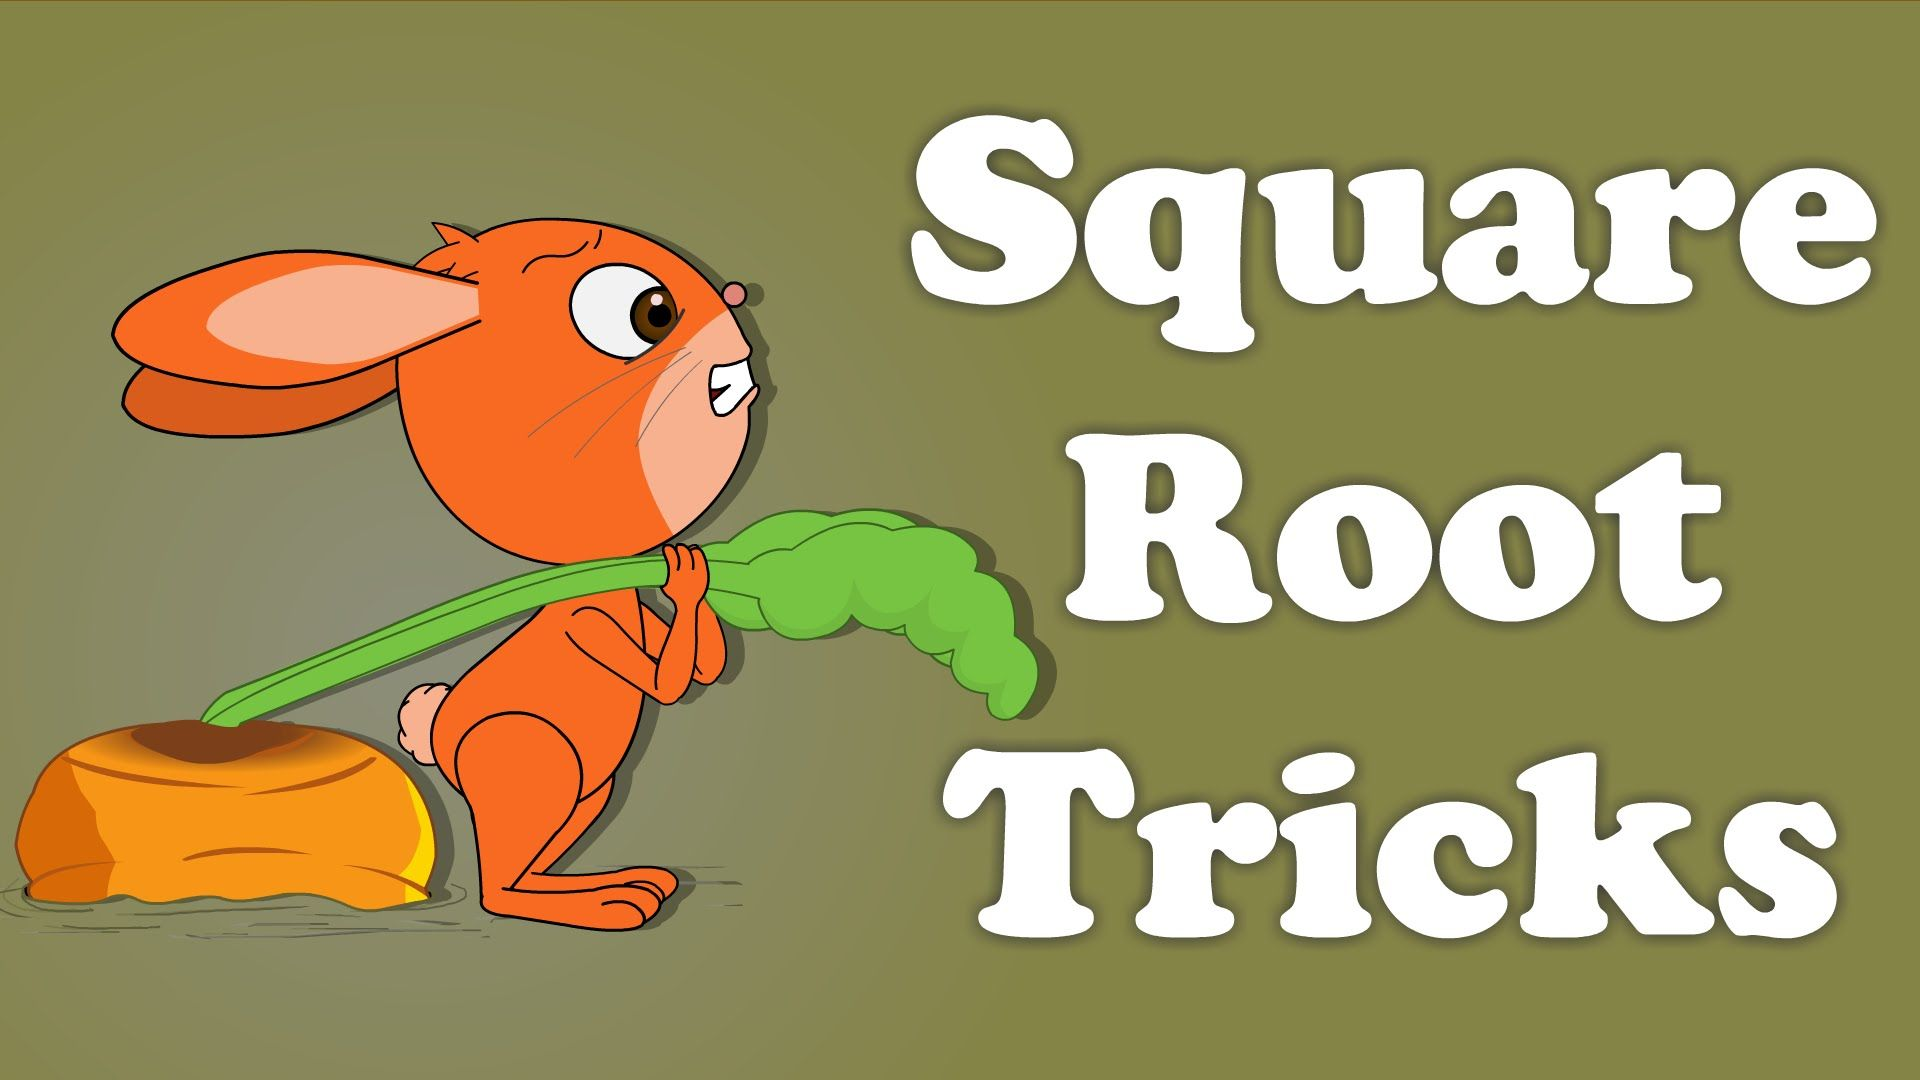 You Will Learn About Square Root Tricks In This Video